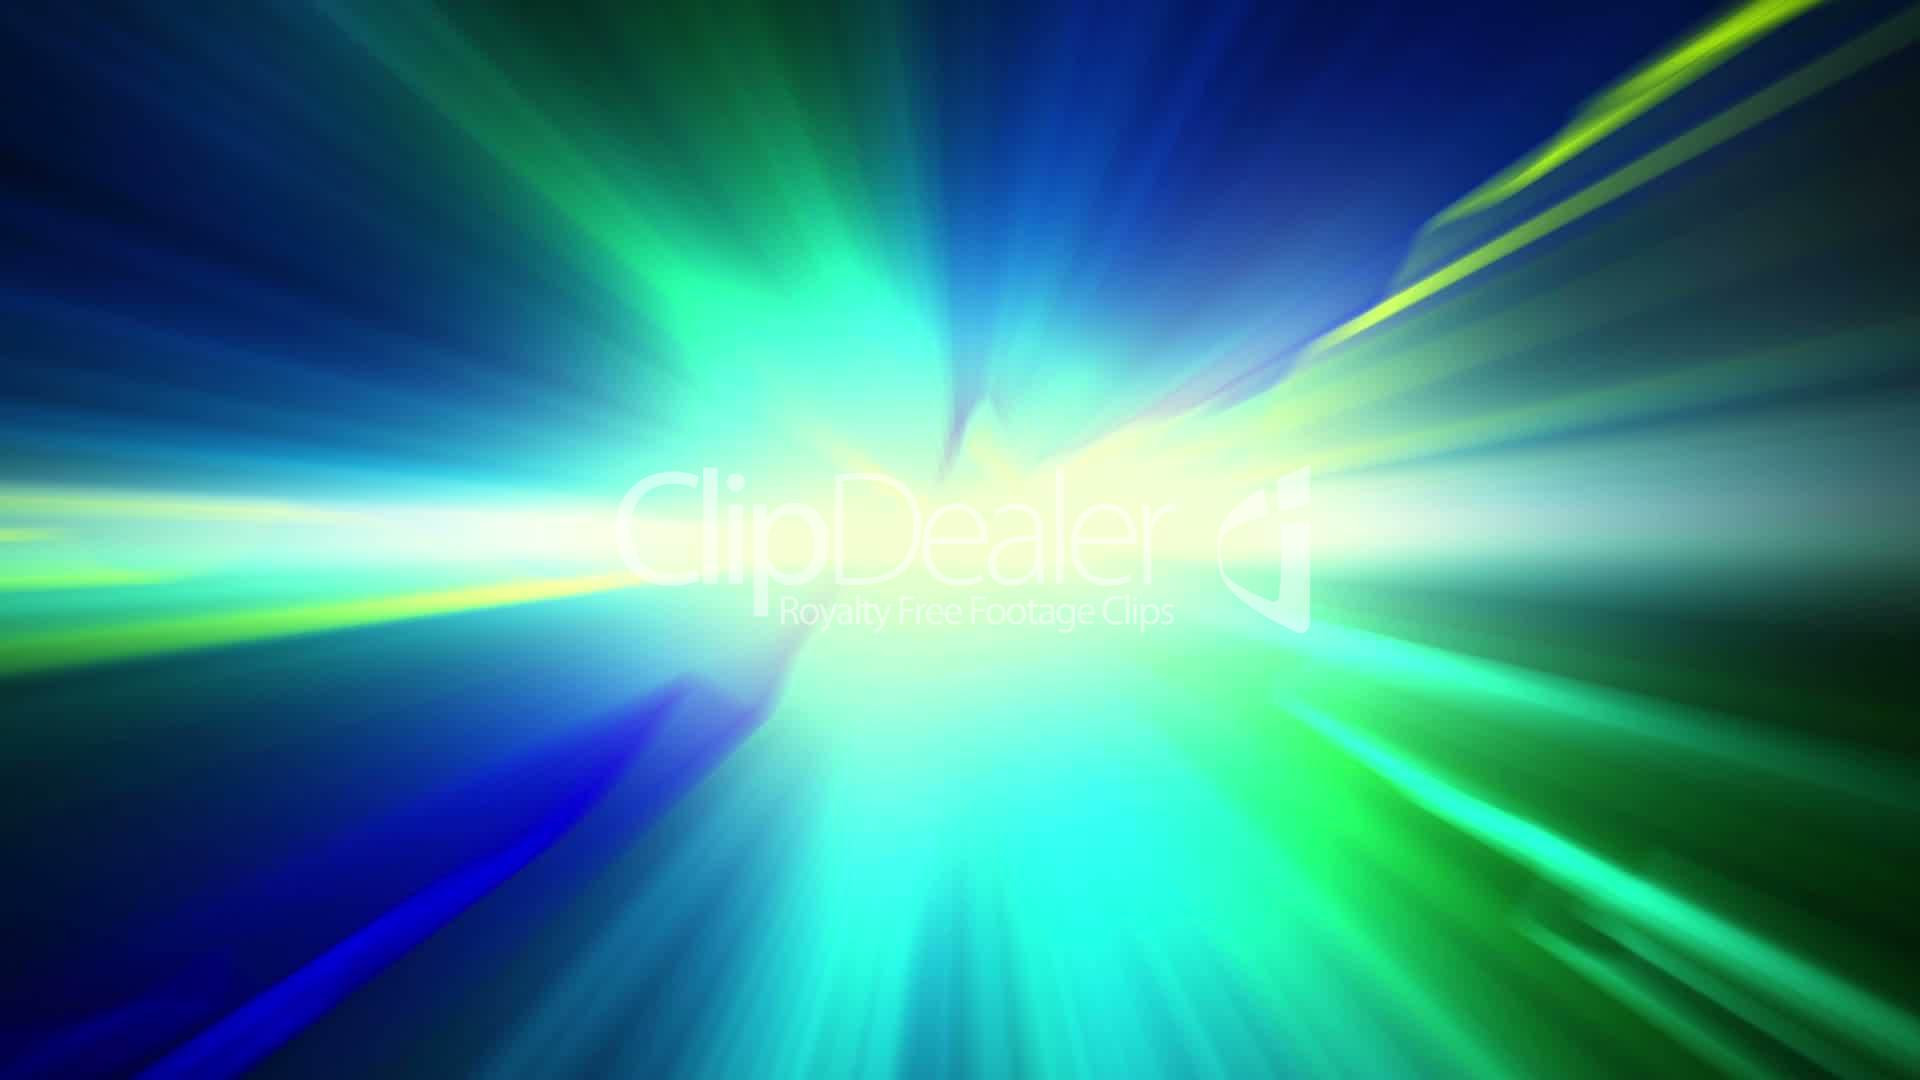 blue green shiny light loopable background: Royalty-free ...